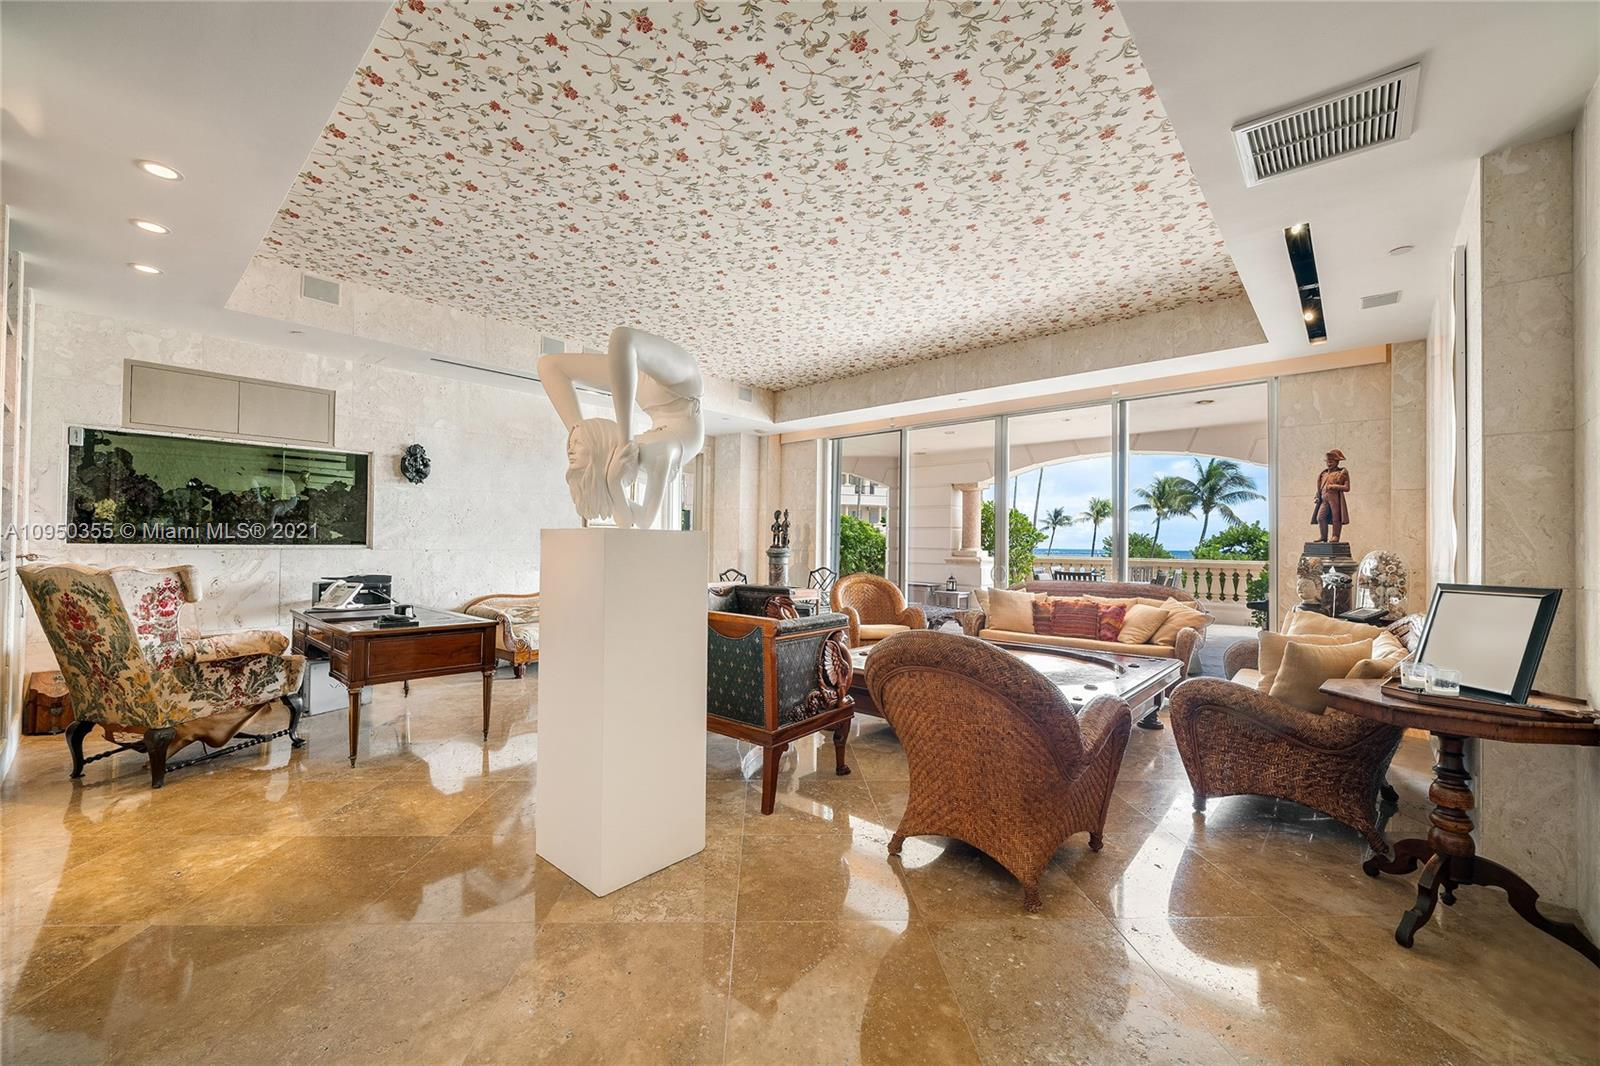 Oceanside #7412 - 7412 Fisher Island Dr #7412, Miami Beach, FL 33109